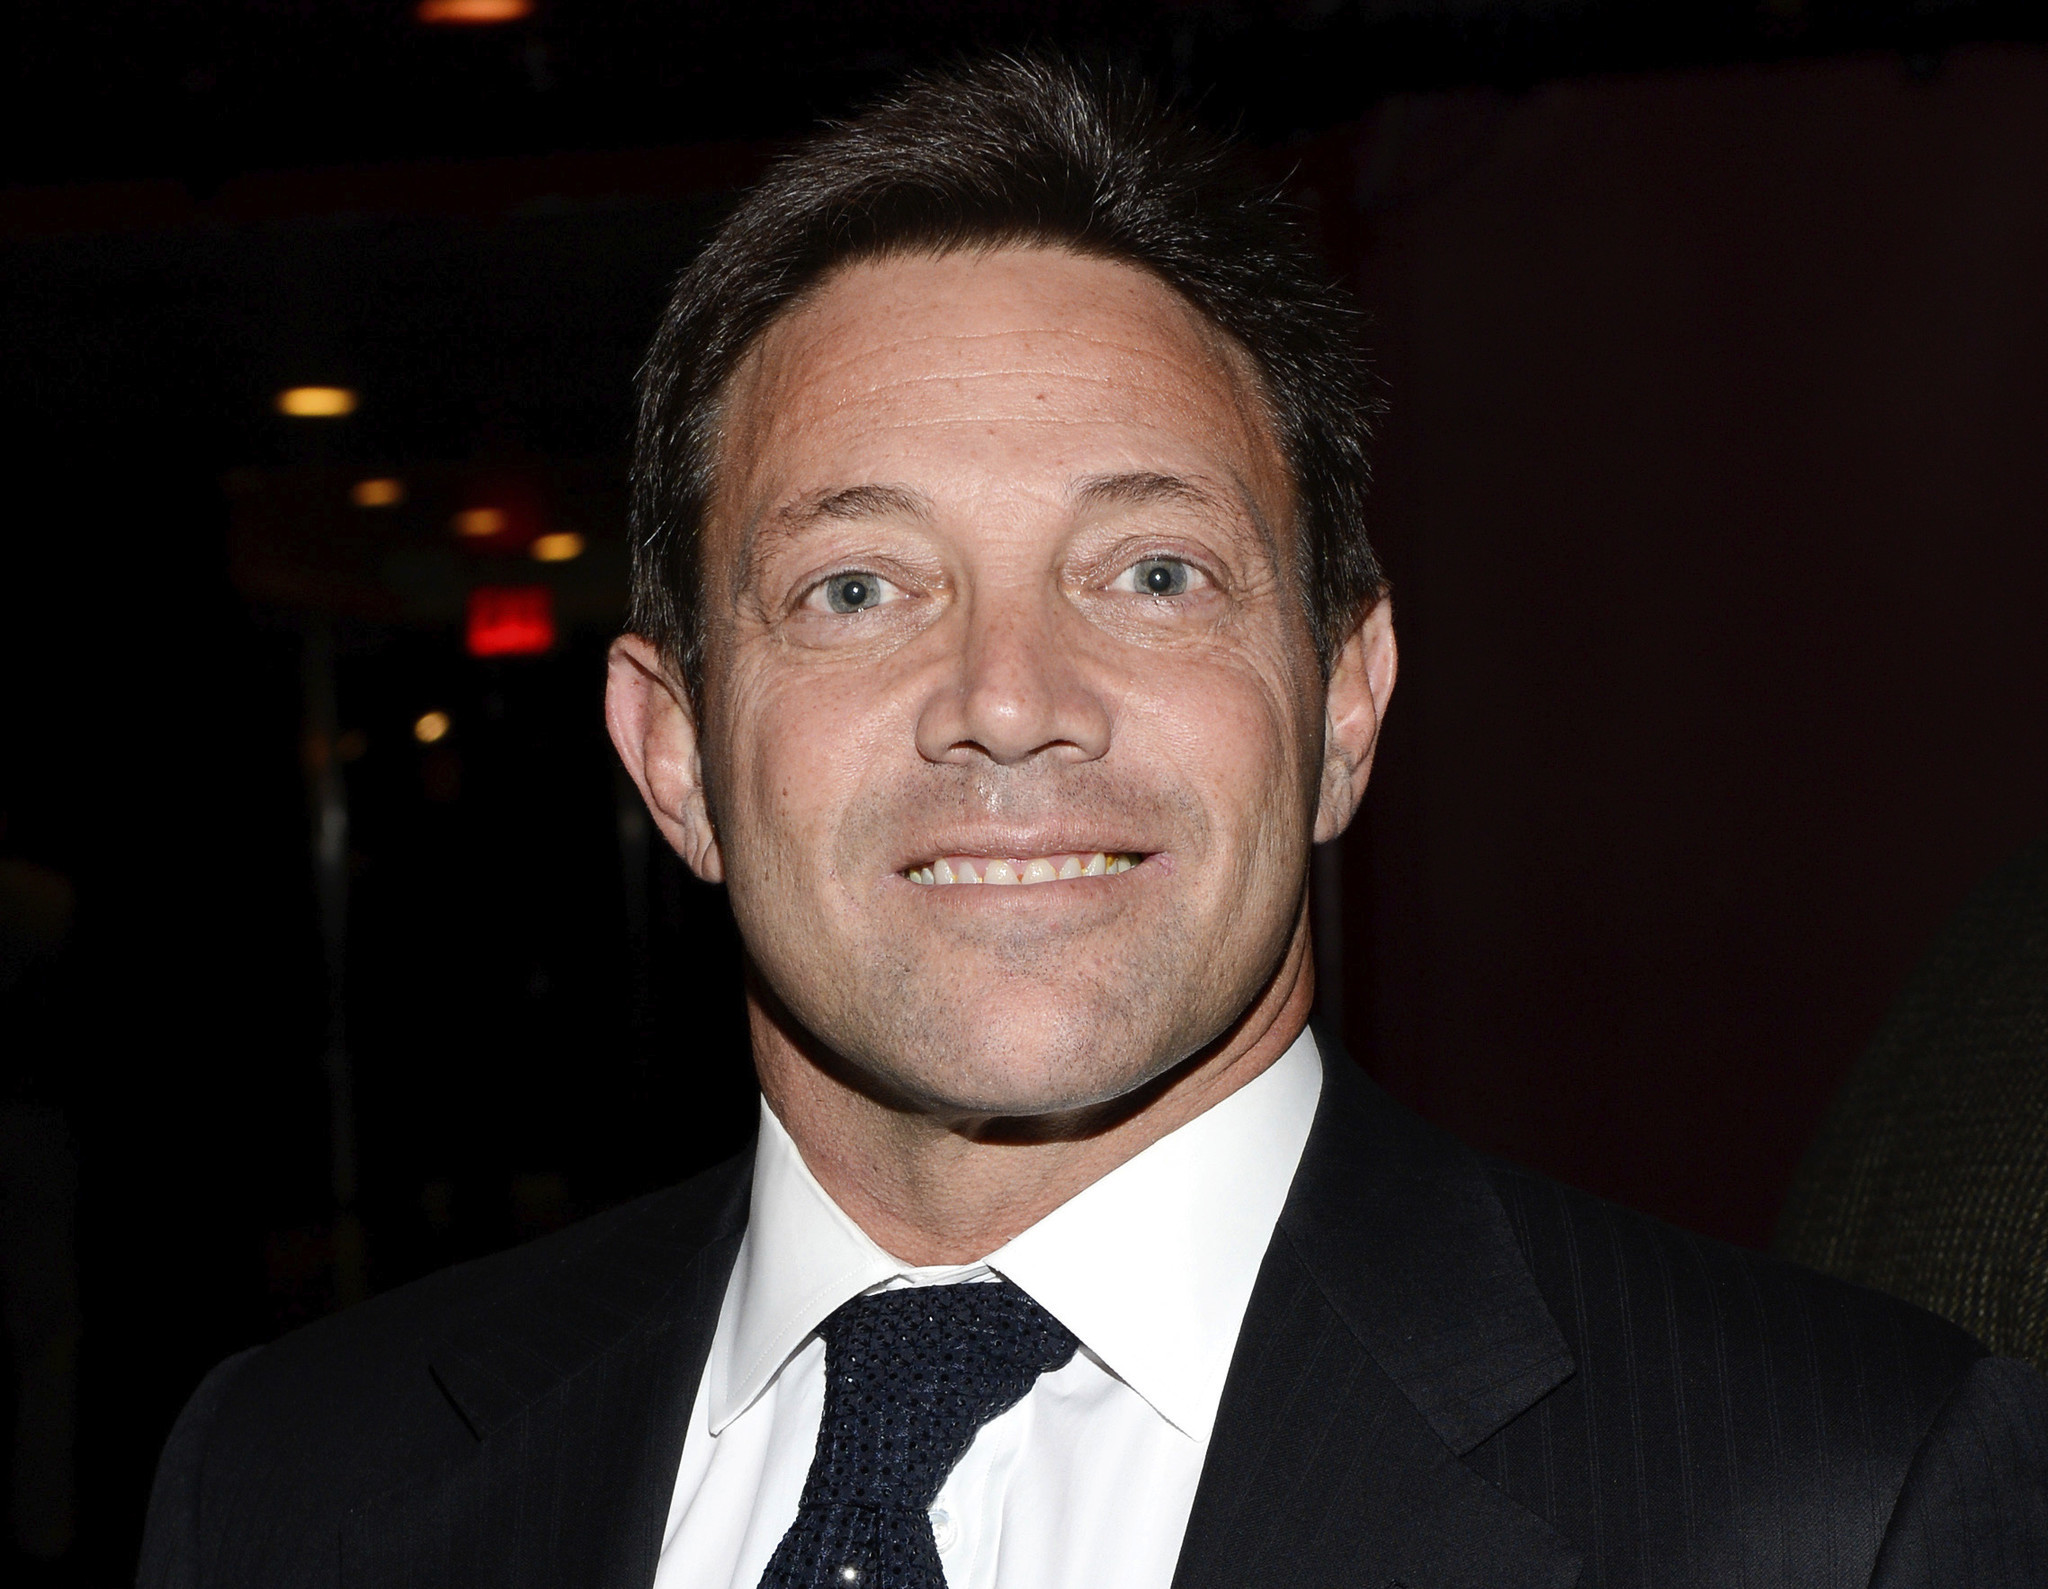 Real-life 'Wolf of Wall Street' Jordan Belfort suing film producers for $300 million